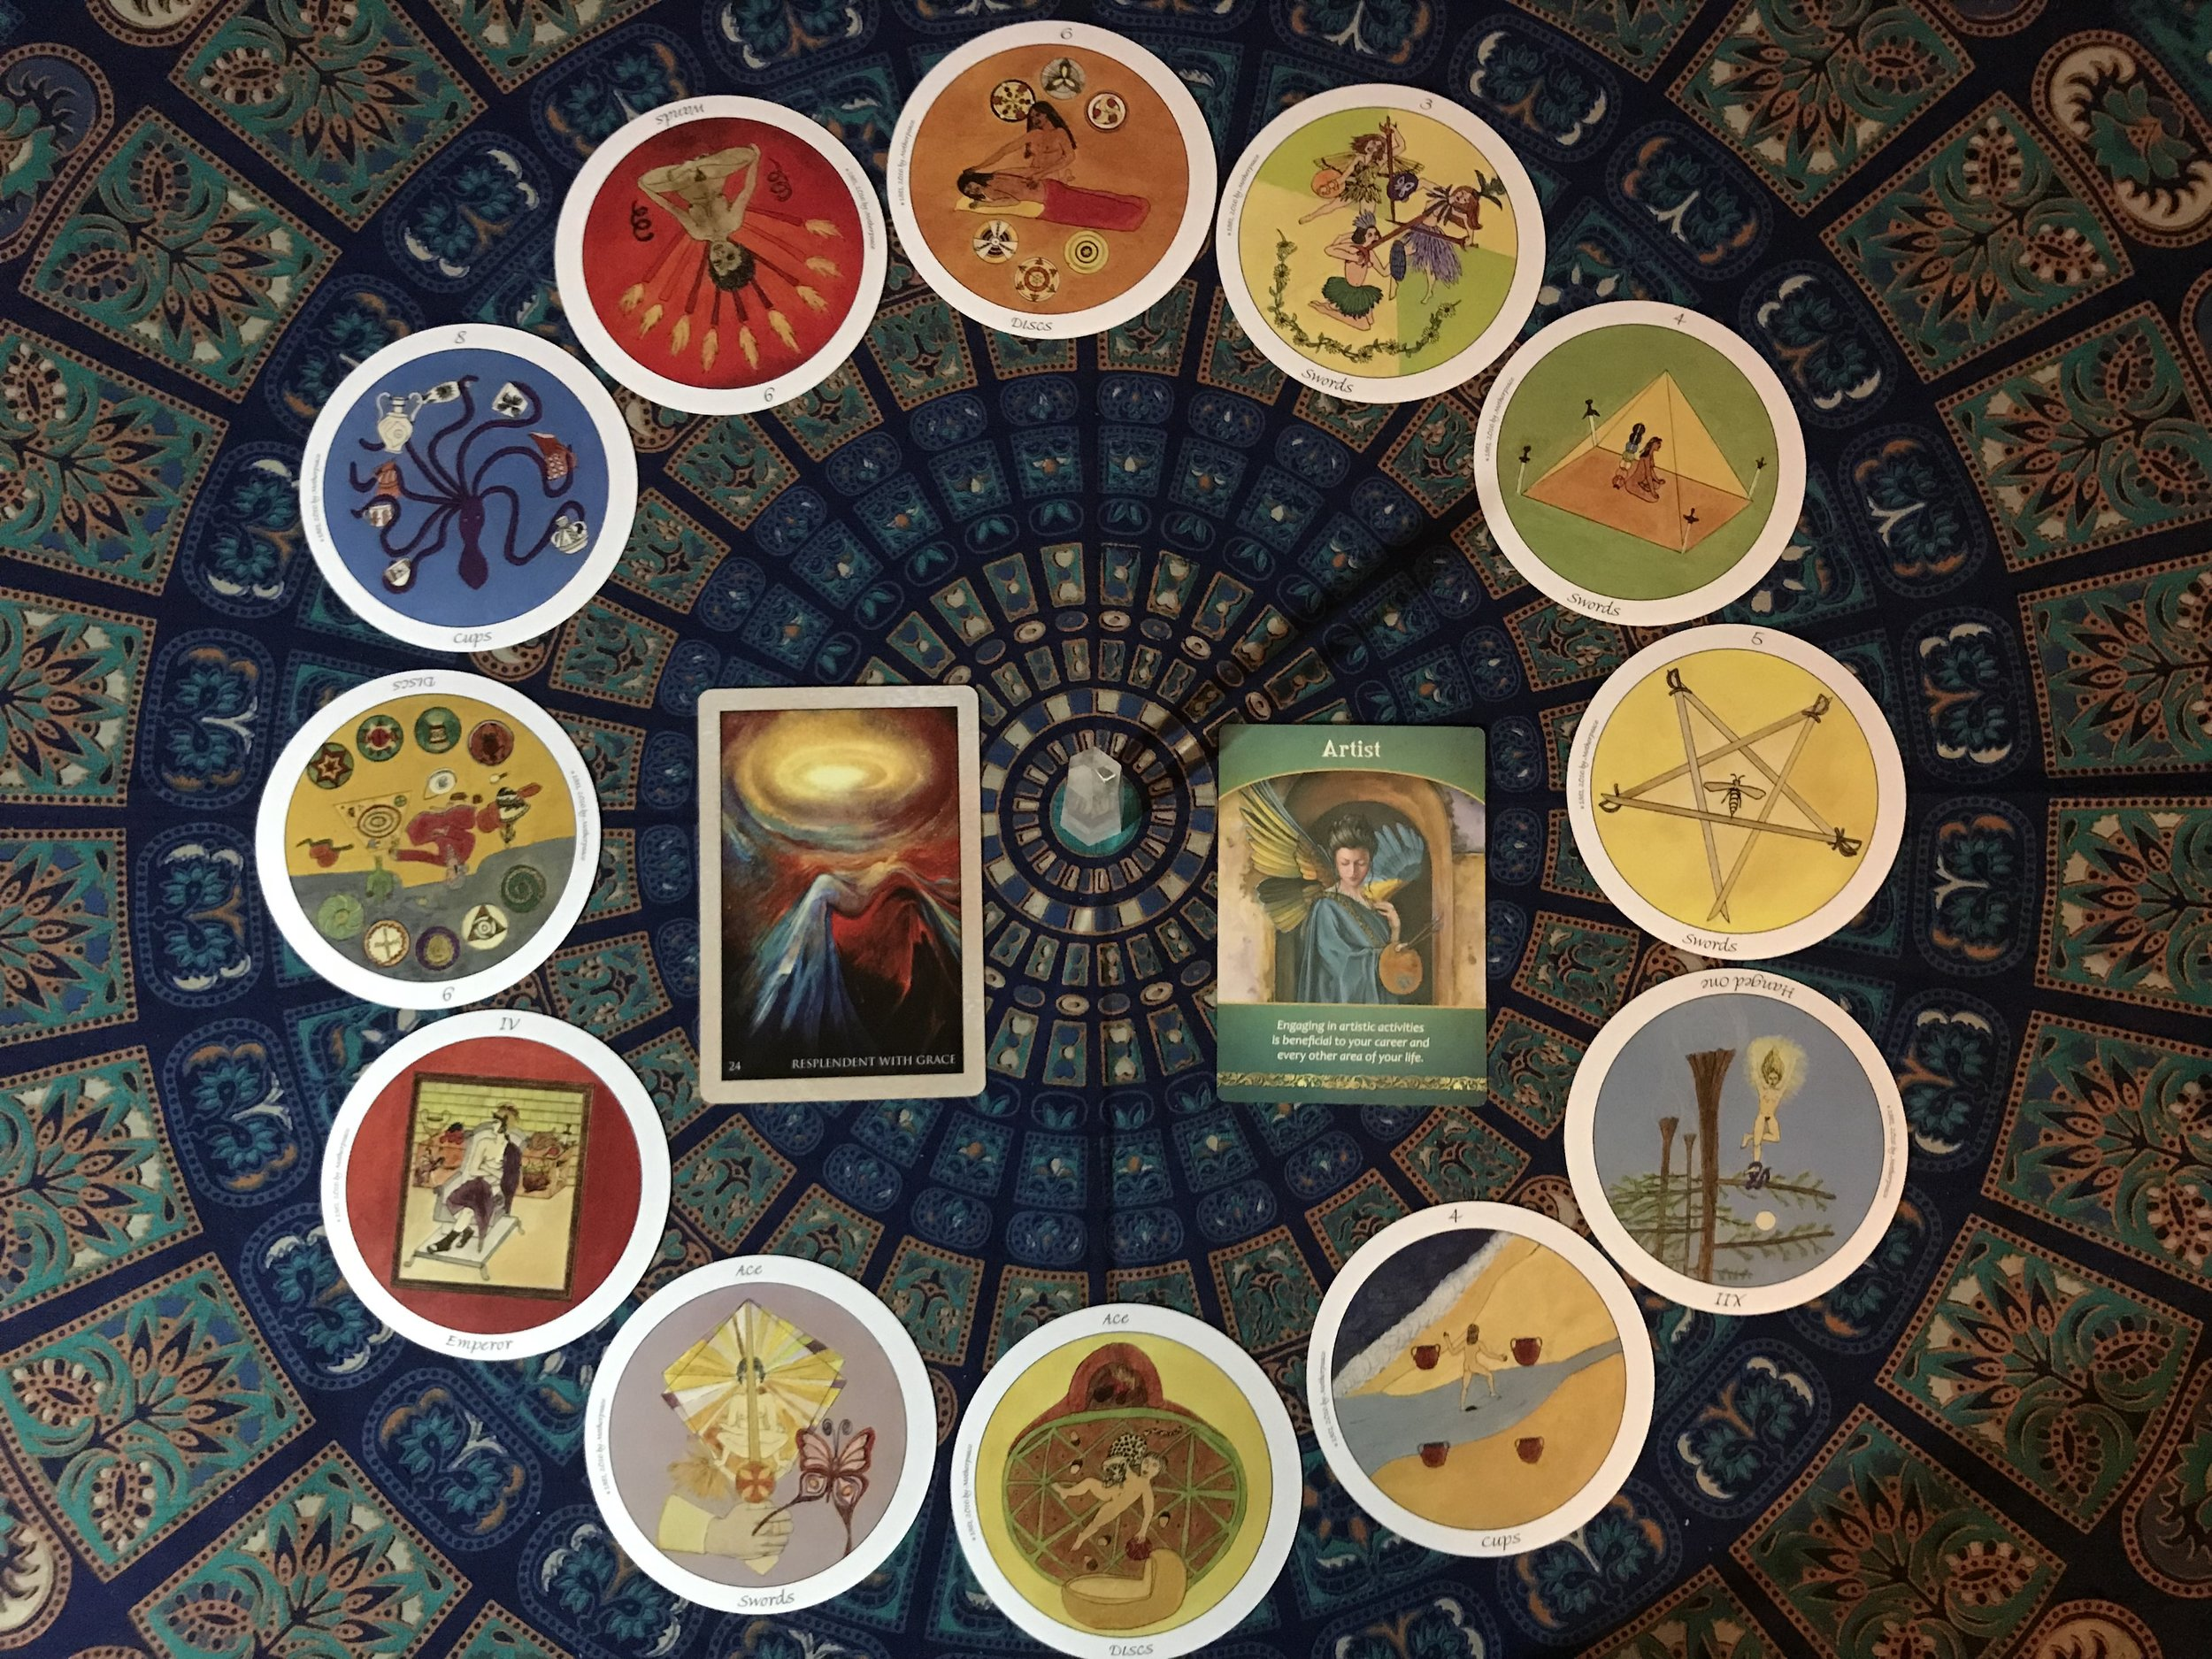 Mother Peace Tarot Deck : 3 of Swords~4 of Swords~5 of Swords~ 12 The Hanged One Rvsd~4 of Cups~Ace of Discs~Ace of Swords~ 4 The Emperor~ 9 of Discs Rvsd ~ 8 of Cups~ 9 of Wands Rvsd~ 6 of Discs  Rumi Oracle Card : 24 Resplendent with Grace  Life Purpose Card : Artist